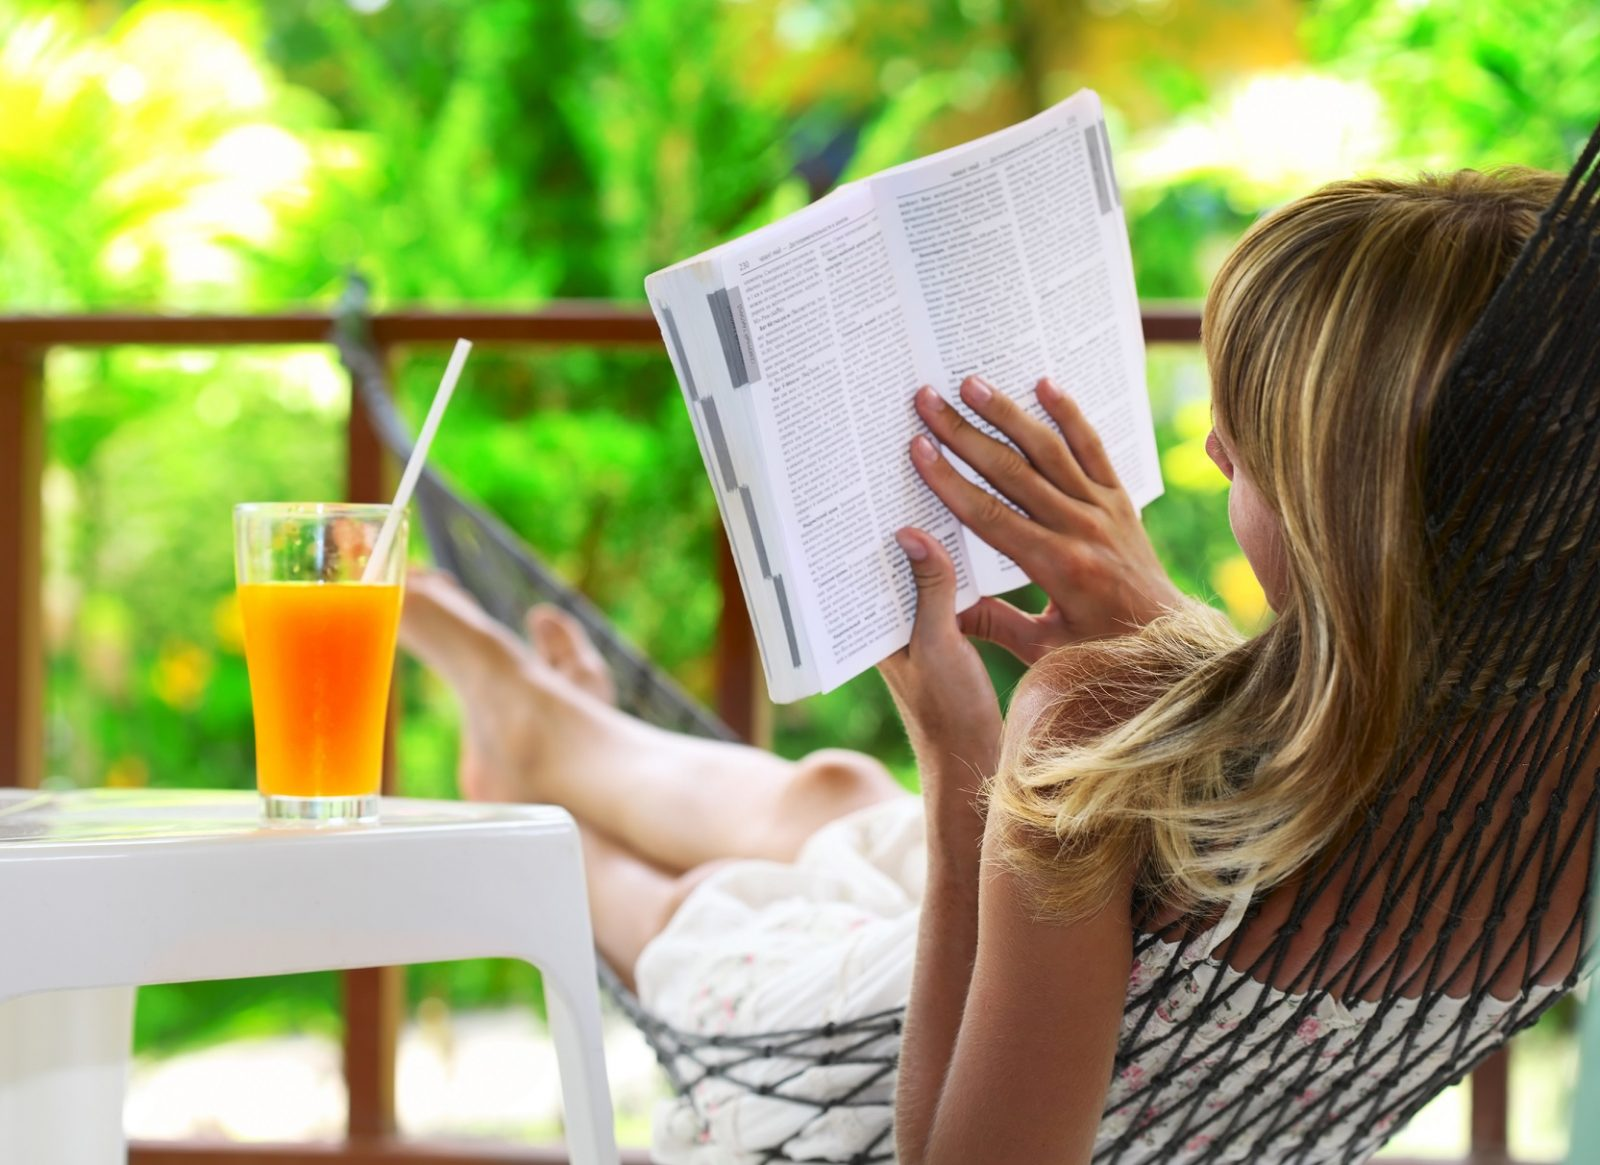 Give mom some alone time to relax with a good book and a drink. (ShutterStock)